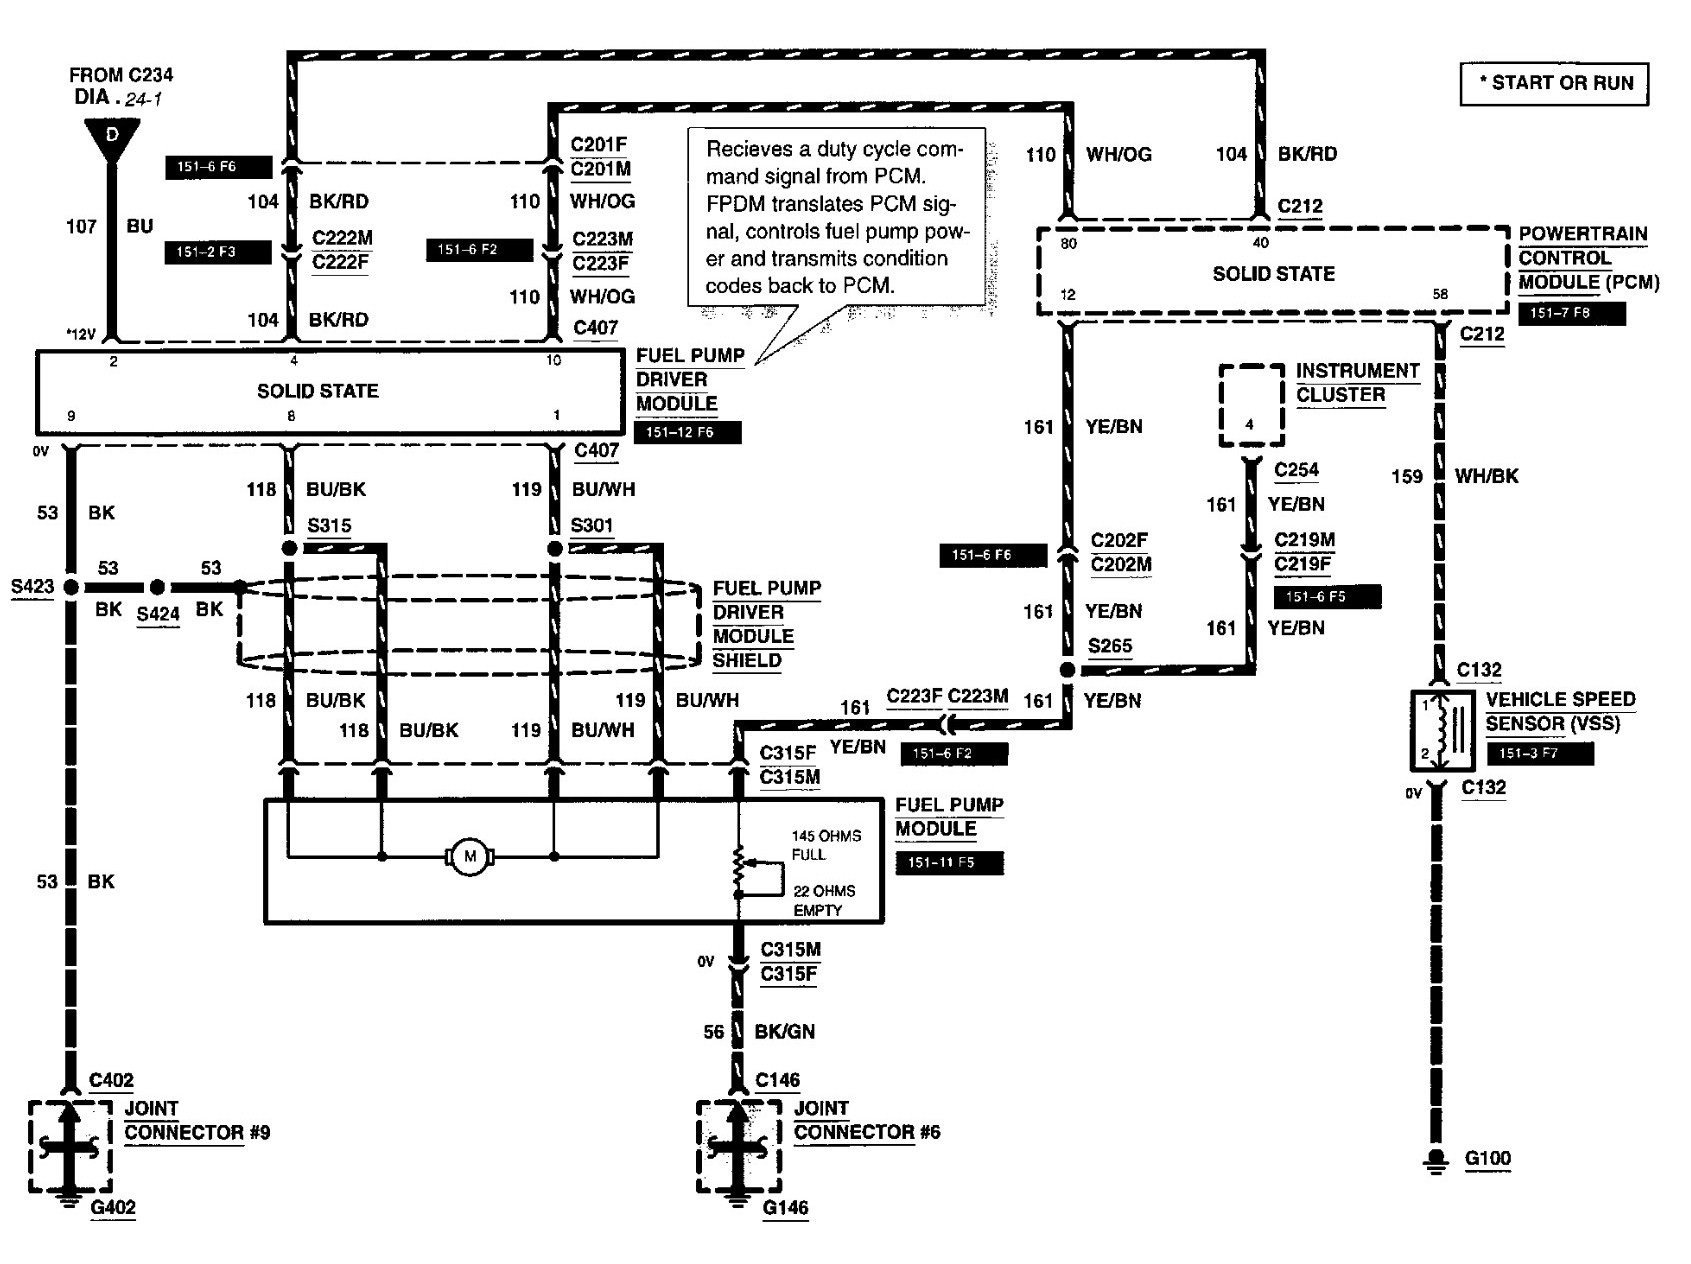 1998 ford Escort Zx2 Engine Diagram Category Wiring 0 Of 1998 ford Escort Zx2 Engine Diagram